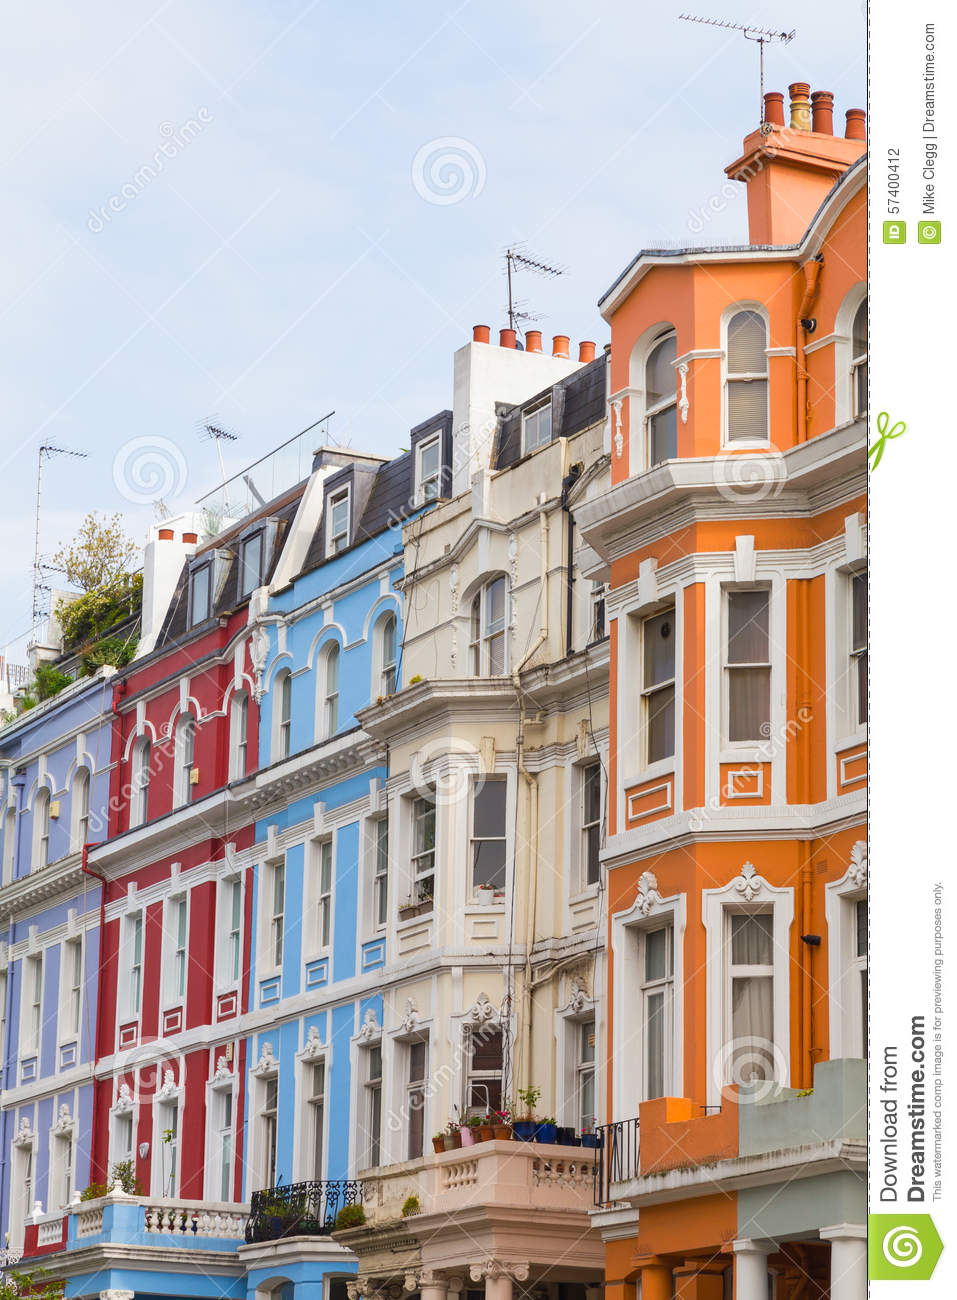 Notting Hill London: Colorful Buildings In Notting Hill London Editorial